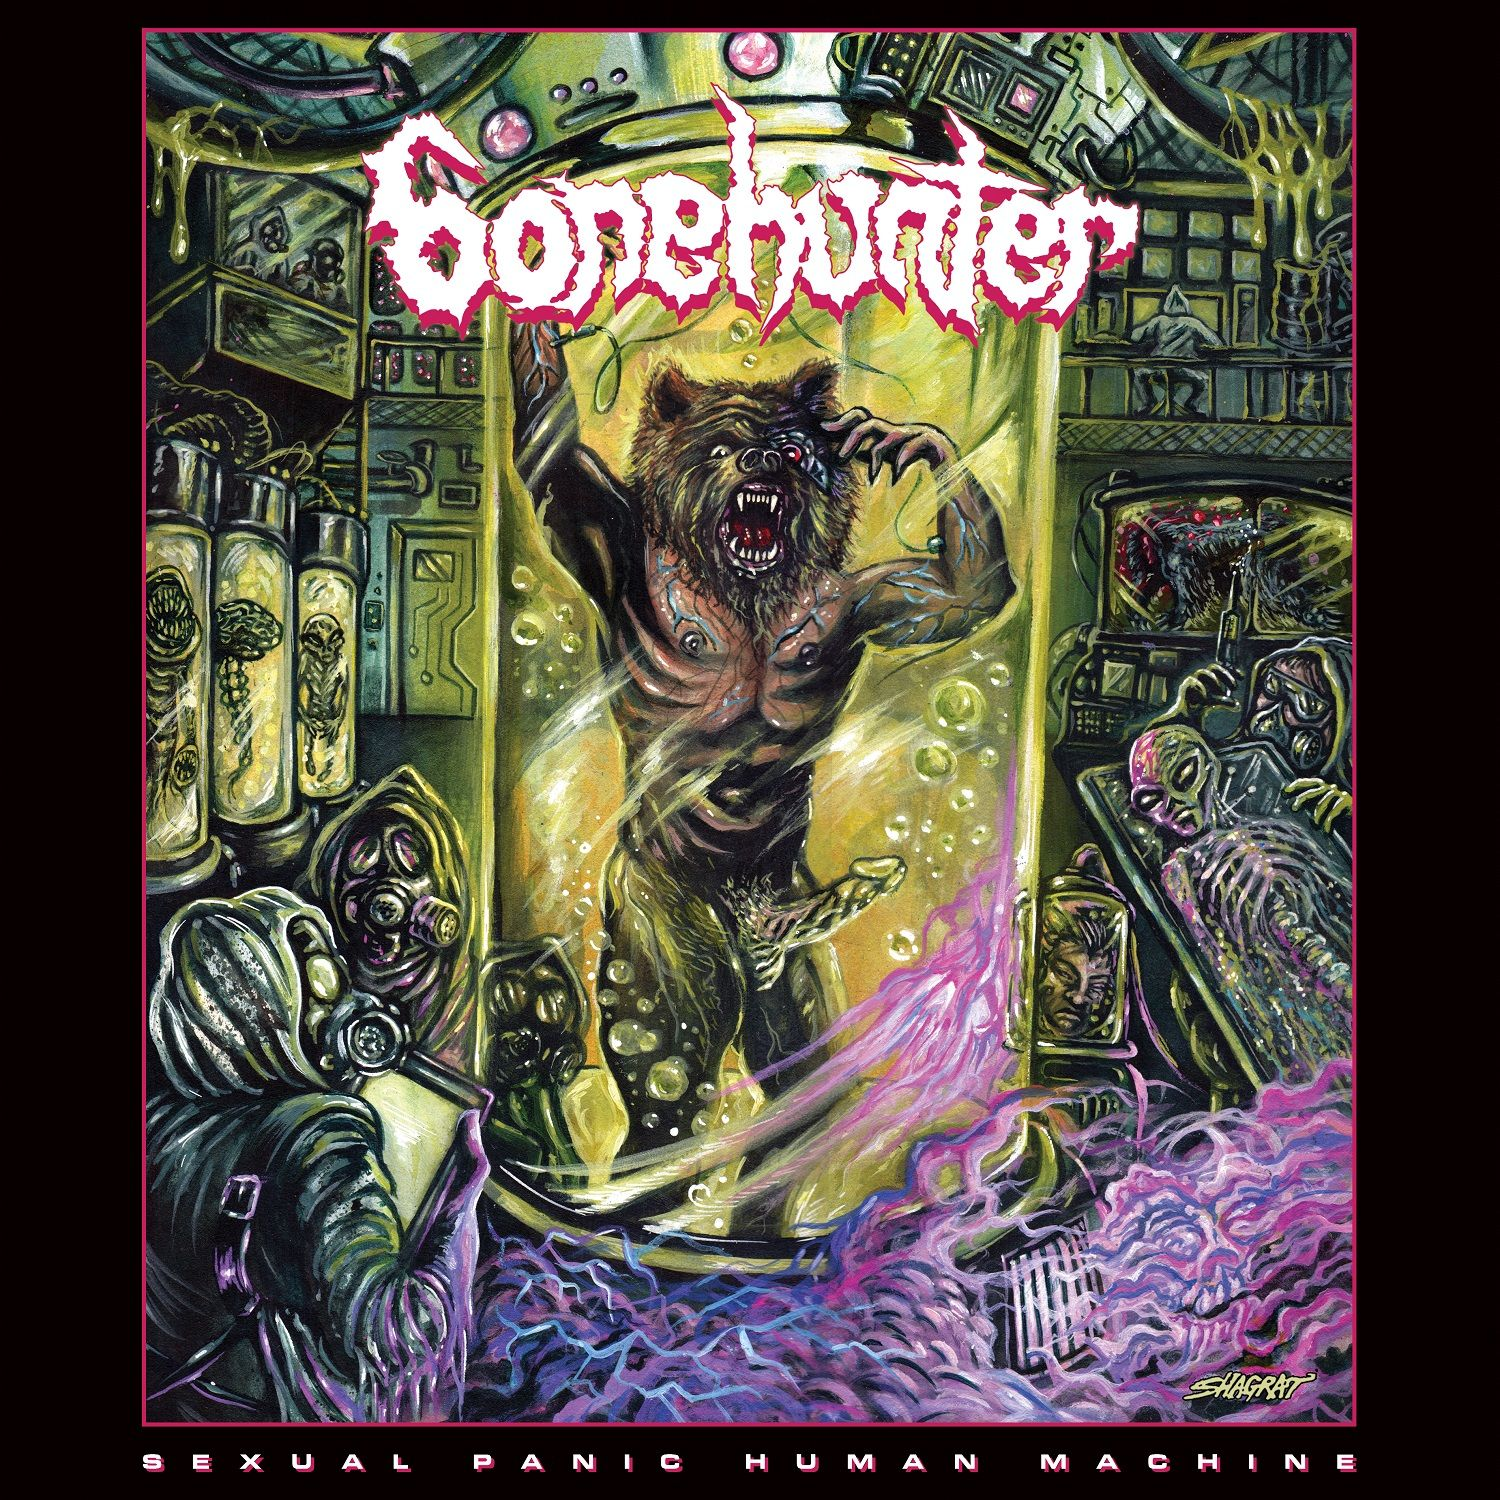 Review for Bonehunter - Sexual Panic Human Machine